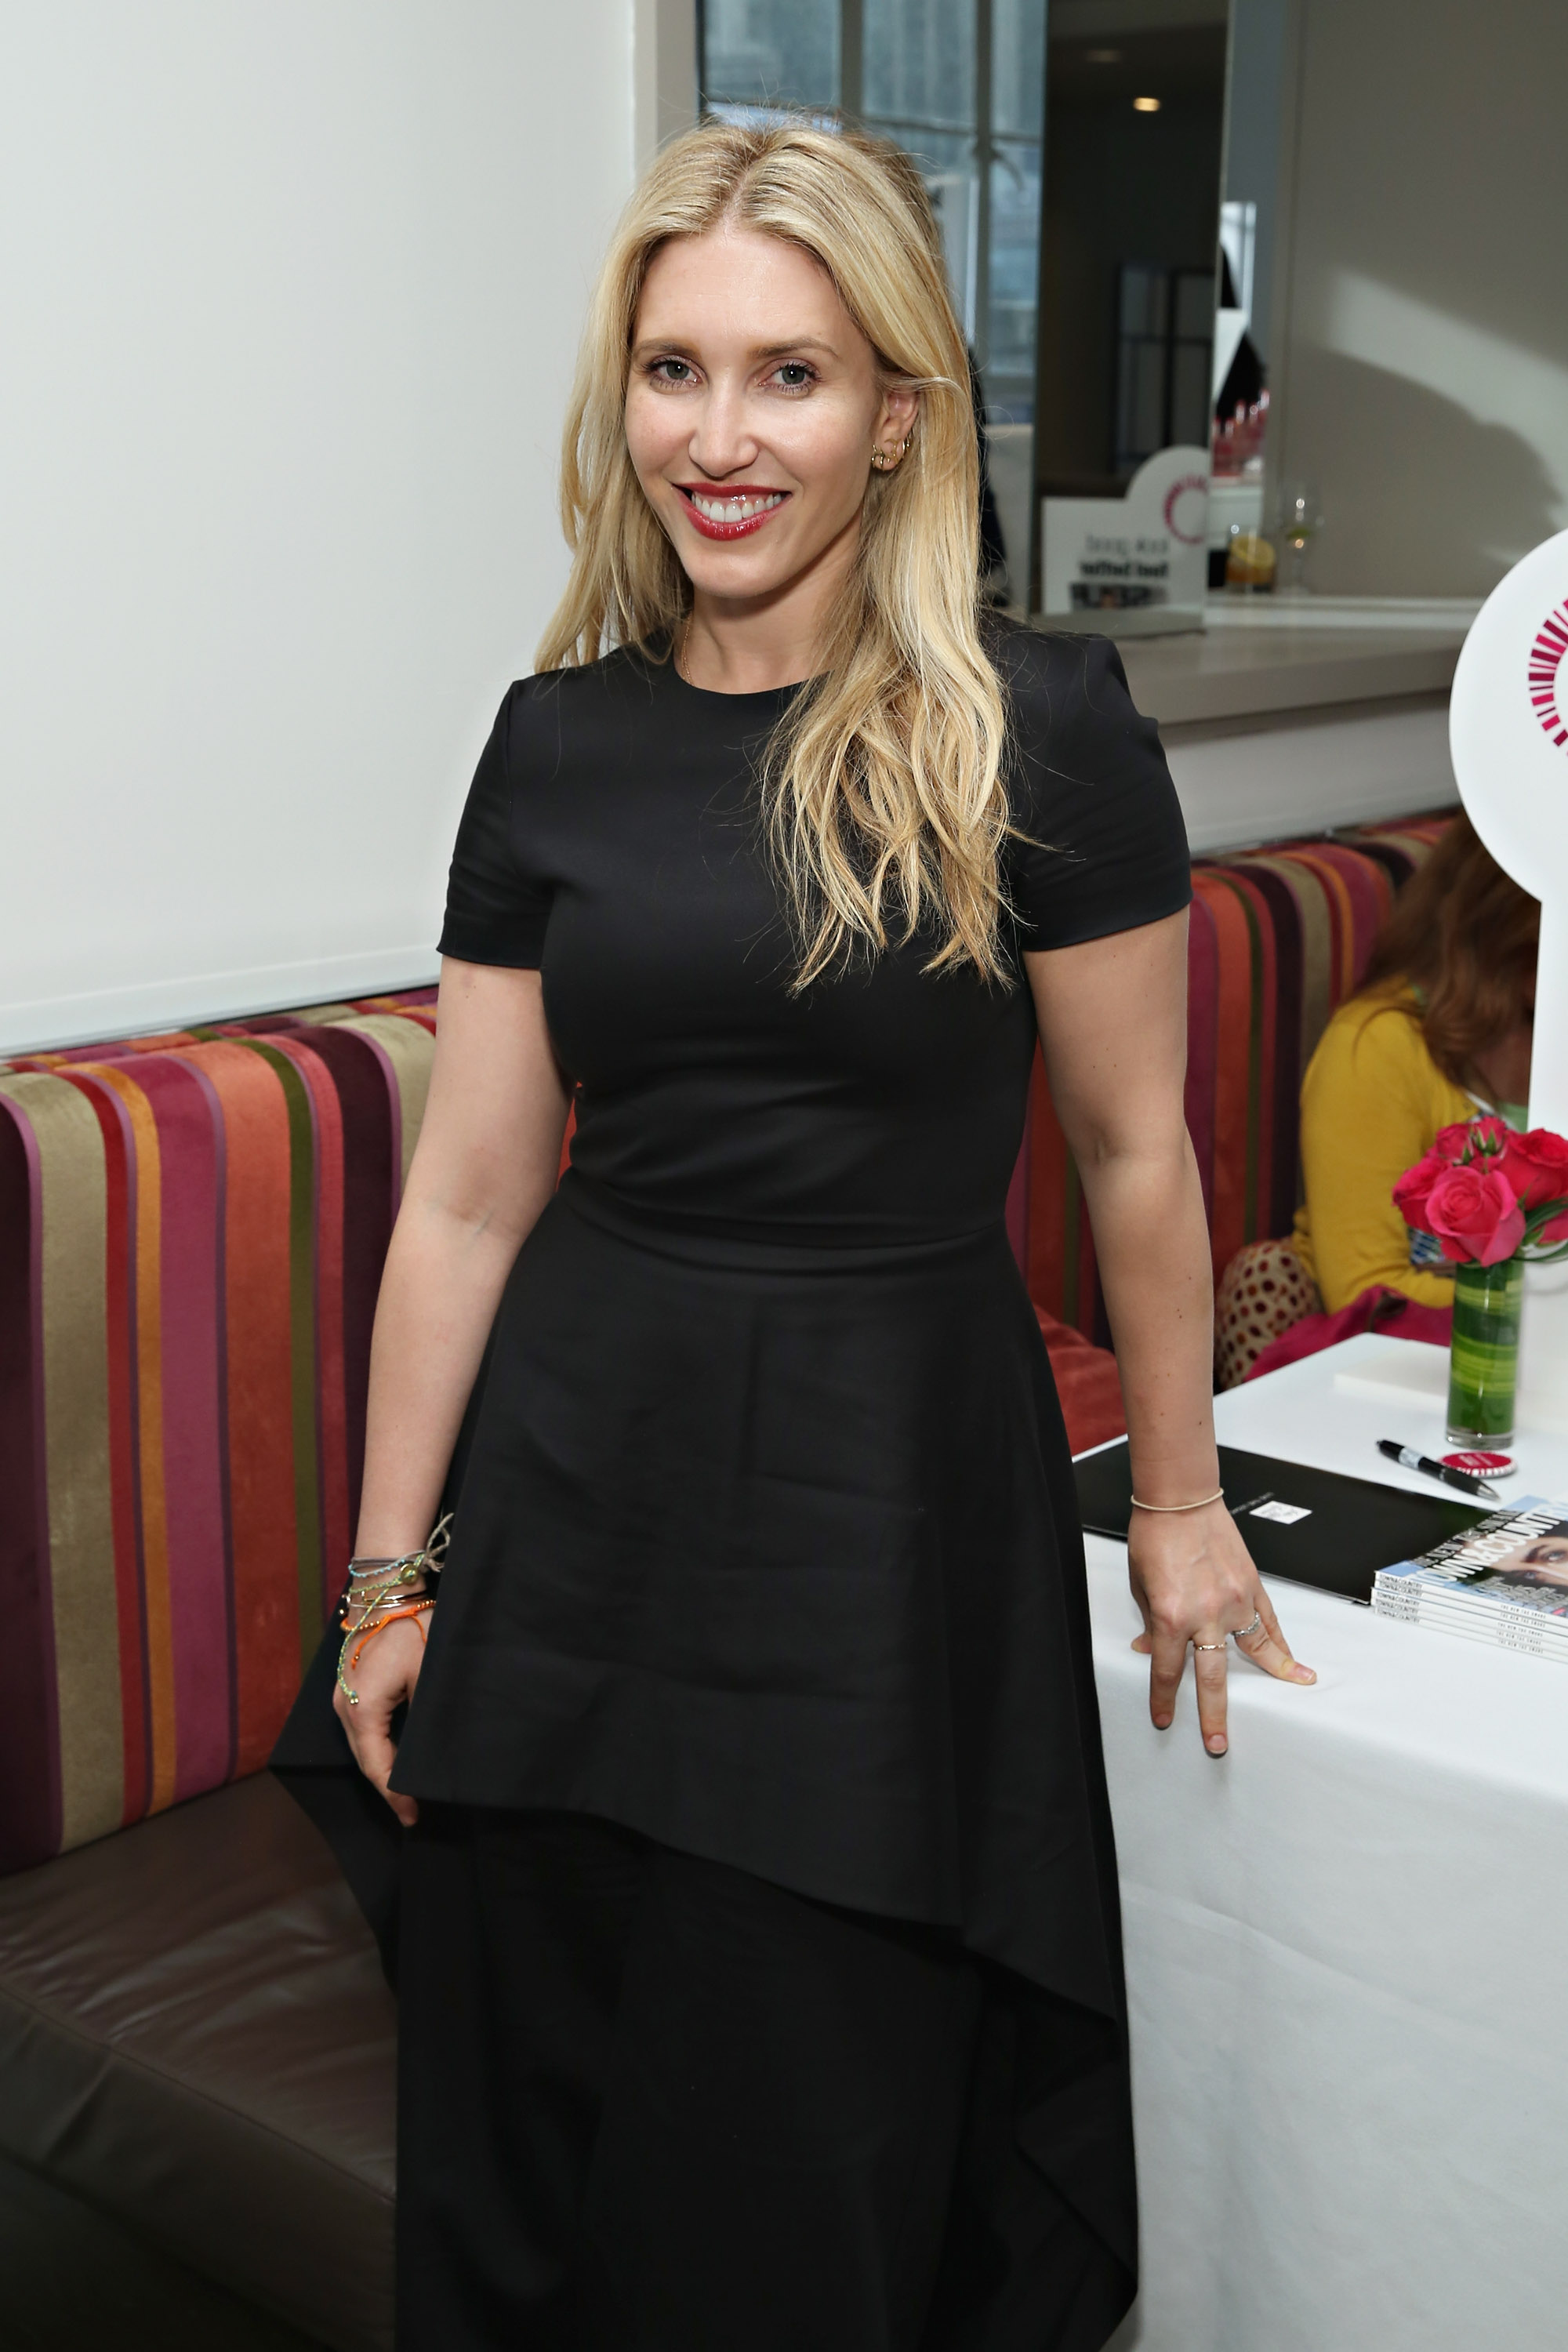 NEW YORK, NY - AUGUST 06: Beauty Director of Town & Country, Jamie Rosen attends the fourth annual Beauty Editors Day at Saks Fifth Avenue on August 6, 2015 in New York City. (Photo by Cindy Ord/Getty Images for Saks Fifth Avenue)